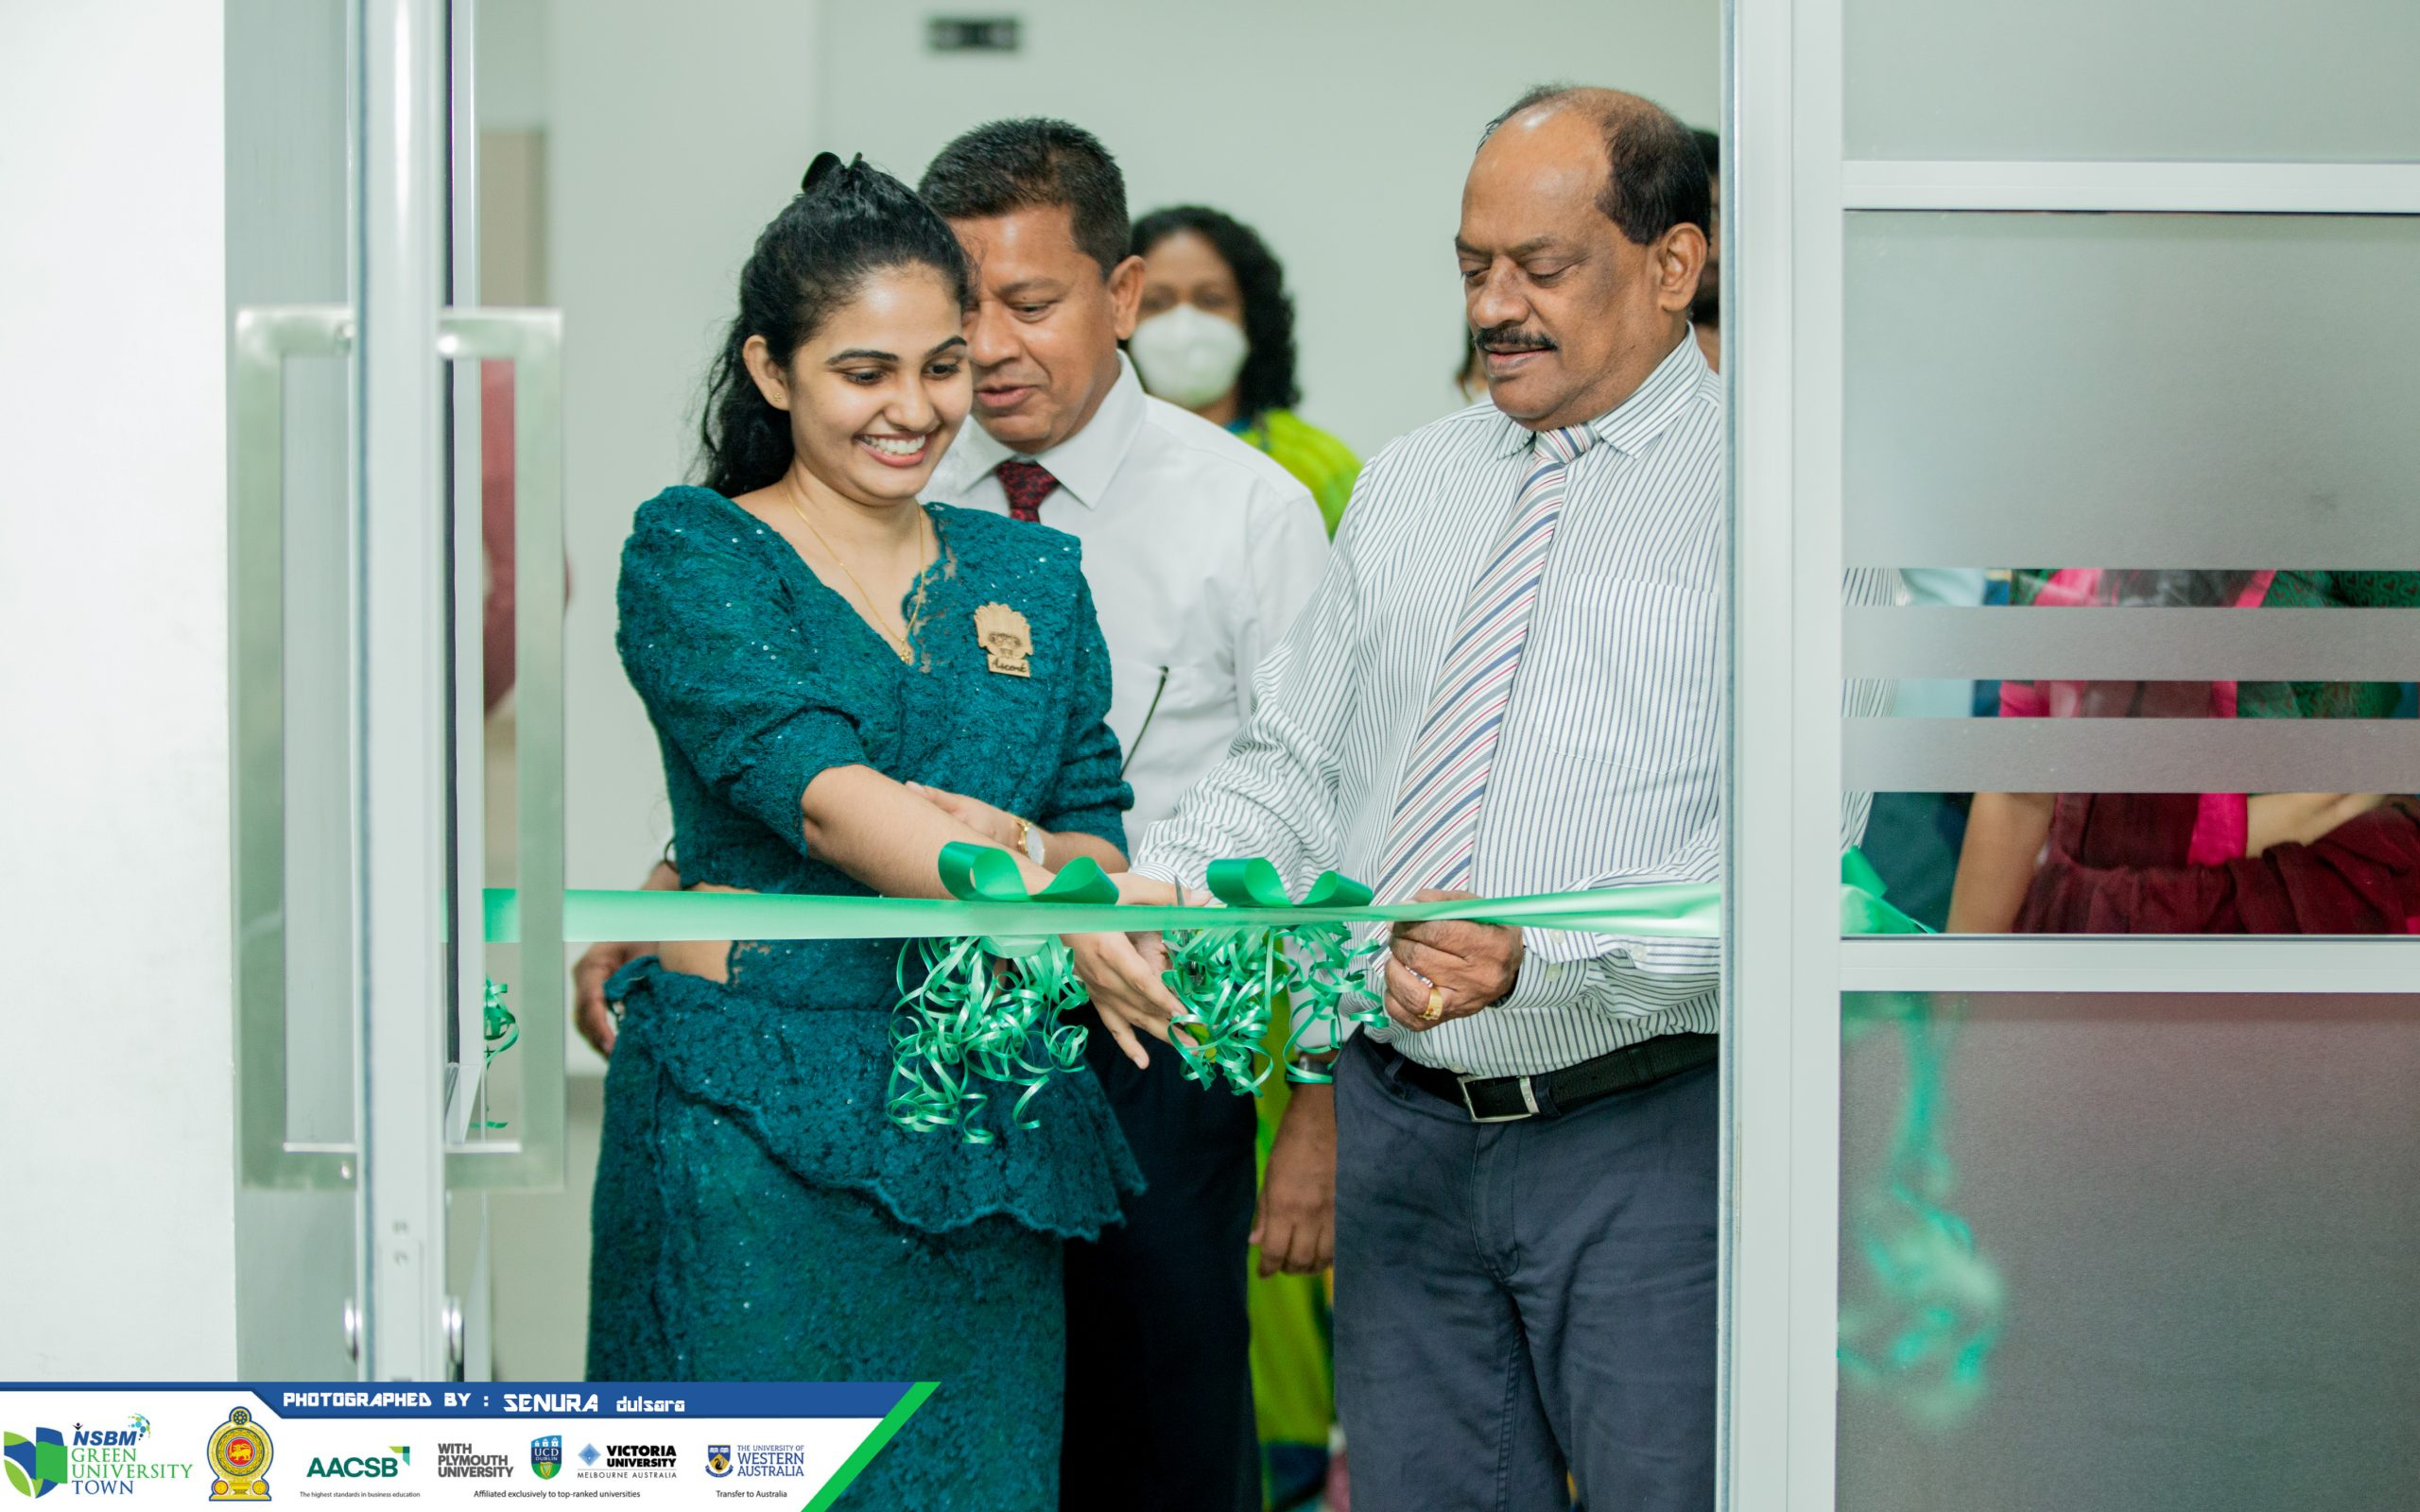 Inauguration ceremony of the Department of Marketing and Tourism Management